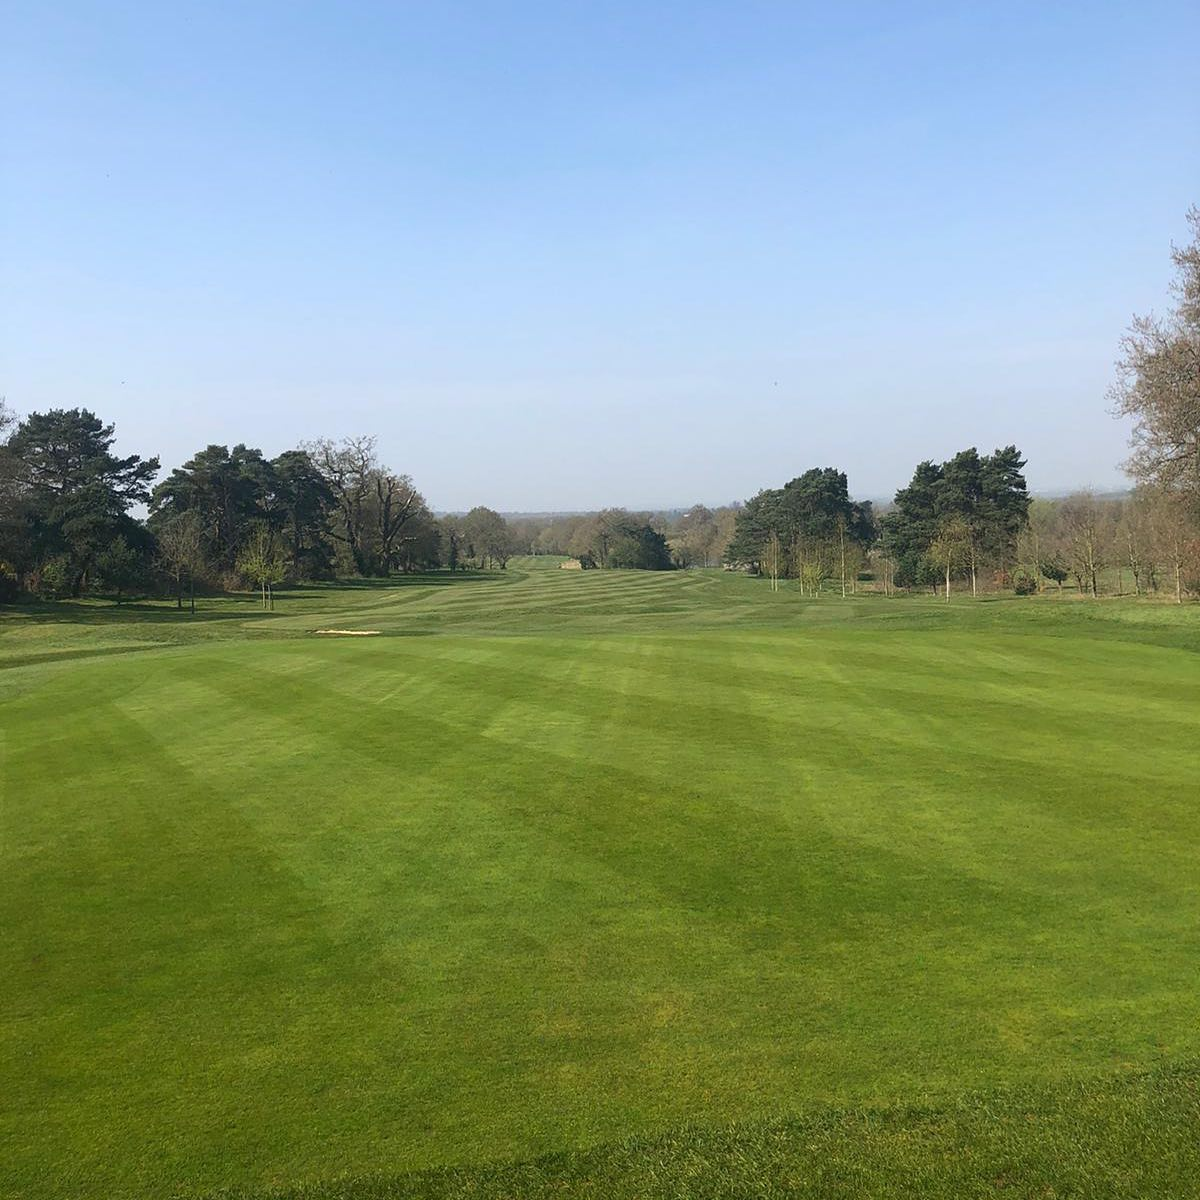 We hope you had a lovely sunny Easter! Our green staff have been working hard and we can't wait to see you all again soon! #hertfordshiregolf #brookmansparkgolfclub #golf #golflifepic.twitter.com/4ngmeUsIZ2